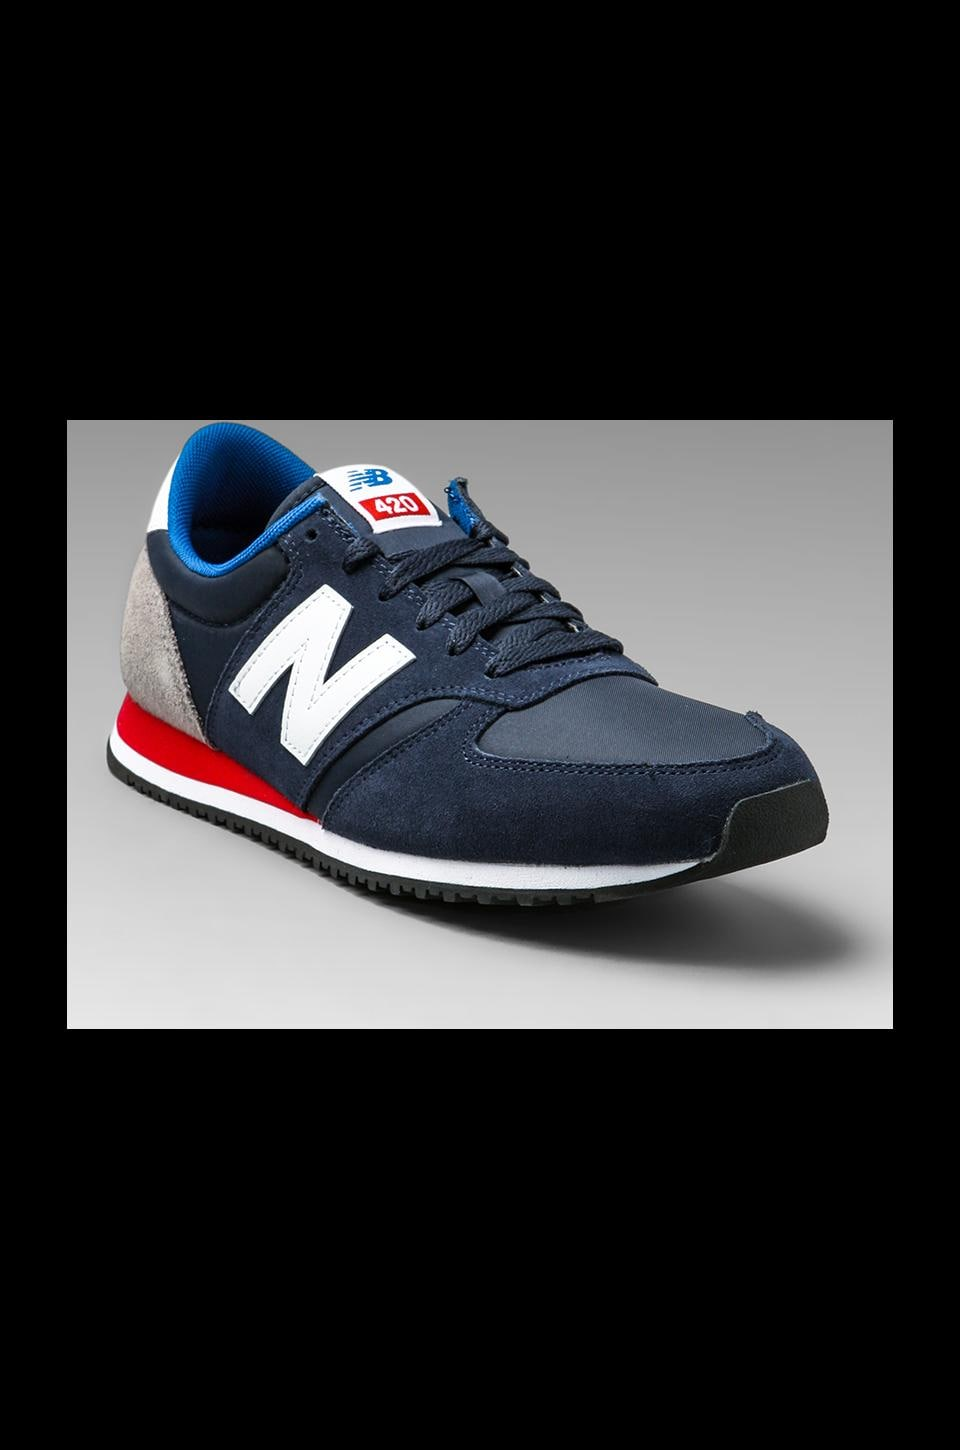 New Balance Classic U420 Suede/Nylon in Navy/Grey/Red